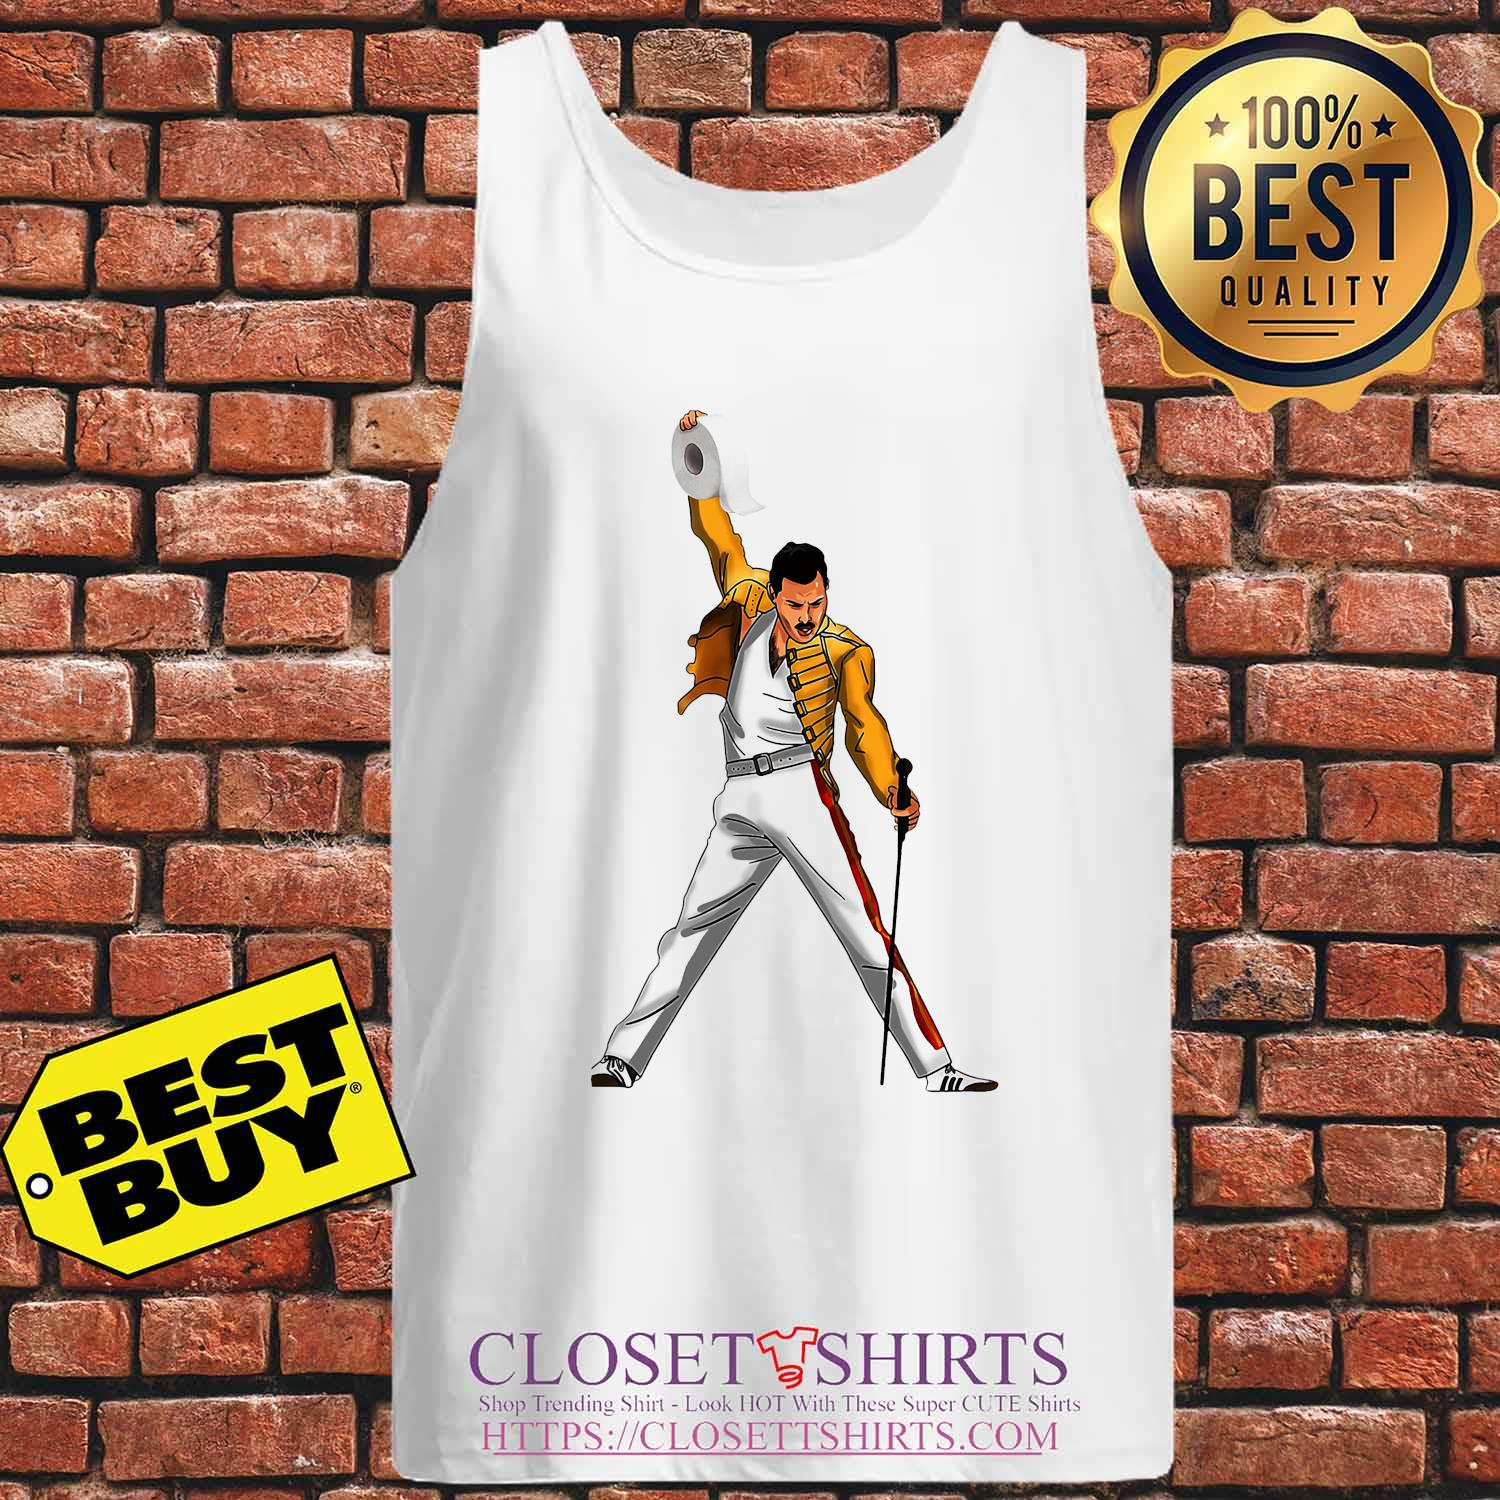 Freddie Mercury Cartoon Toilet Paper 2020 s Tank-top